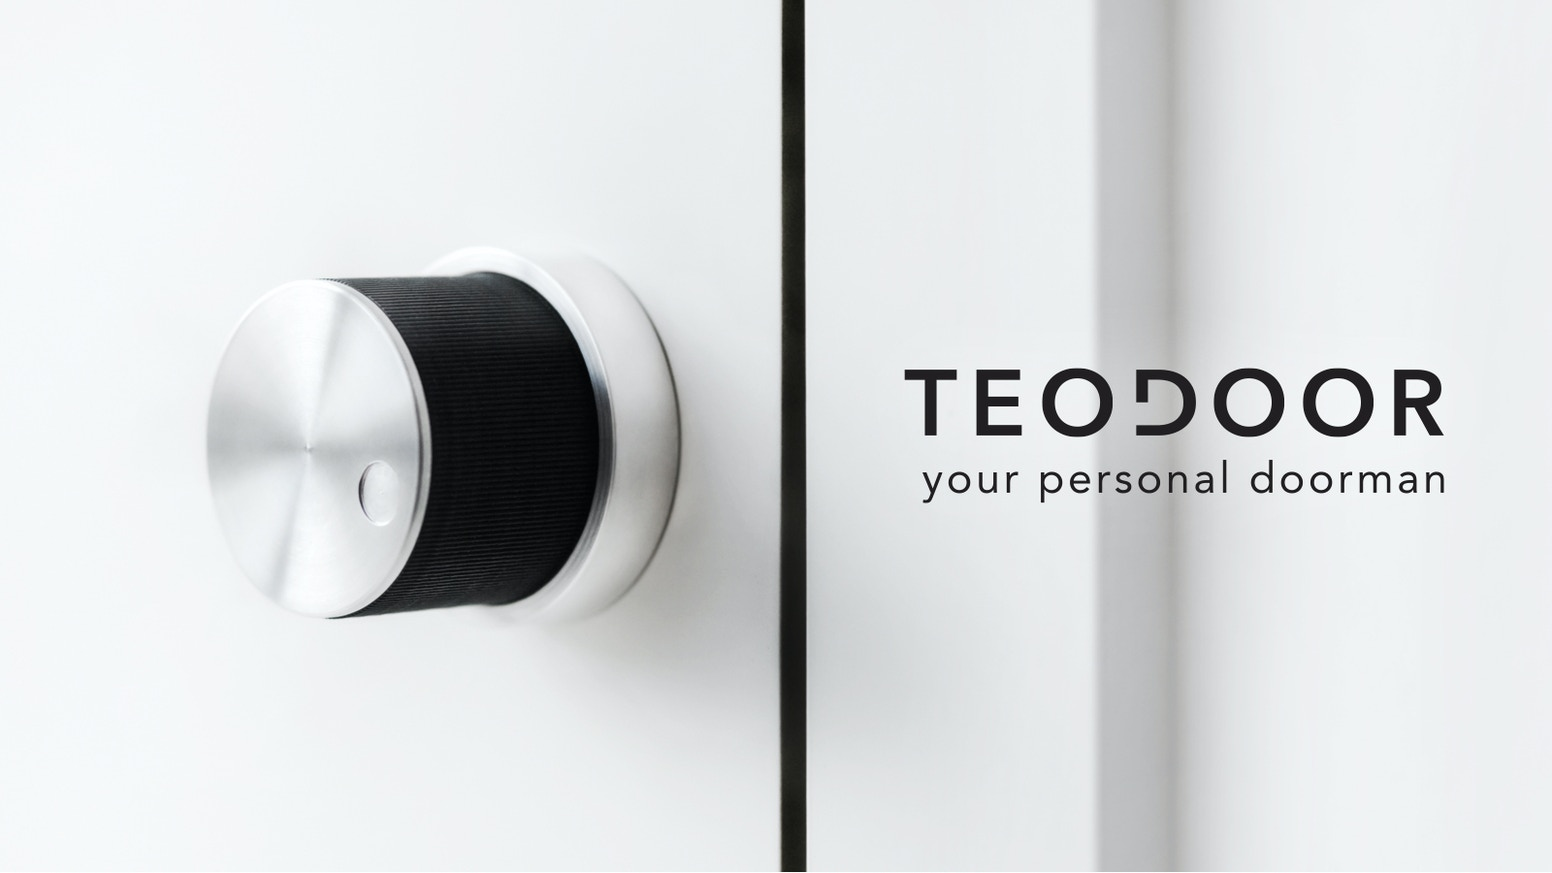 Teodoor Smart Lock By Martin K Kickstarter Gold Digital Keypad Door Keyless Electronic Is A Reliable And Secure Bluetooth Operated It Fits Perfectly On The